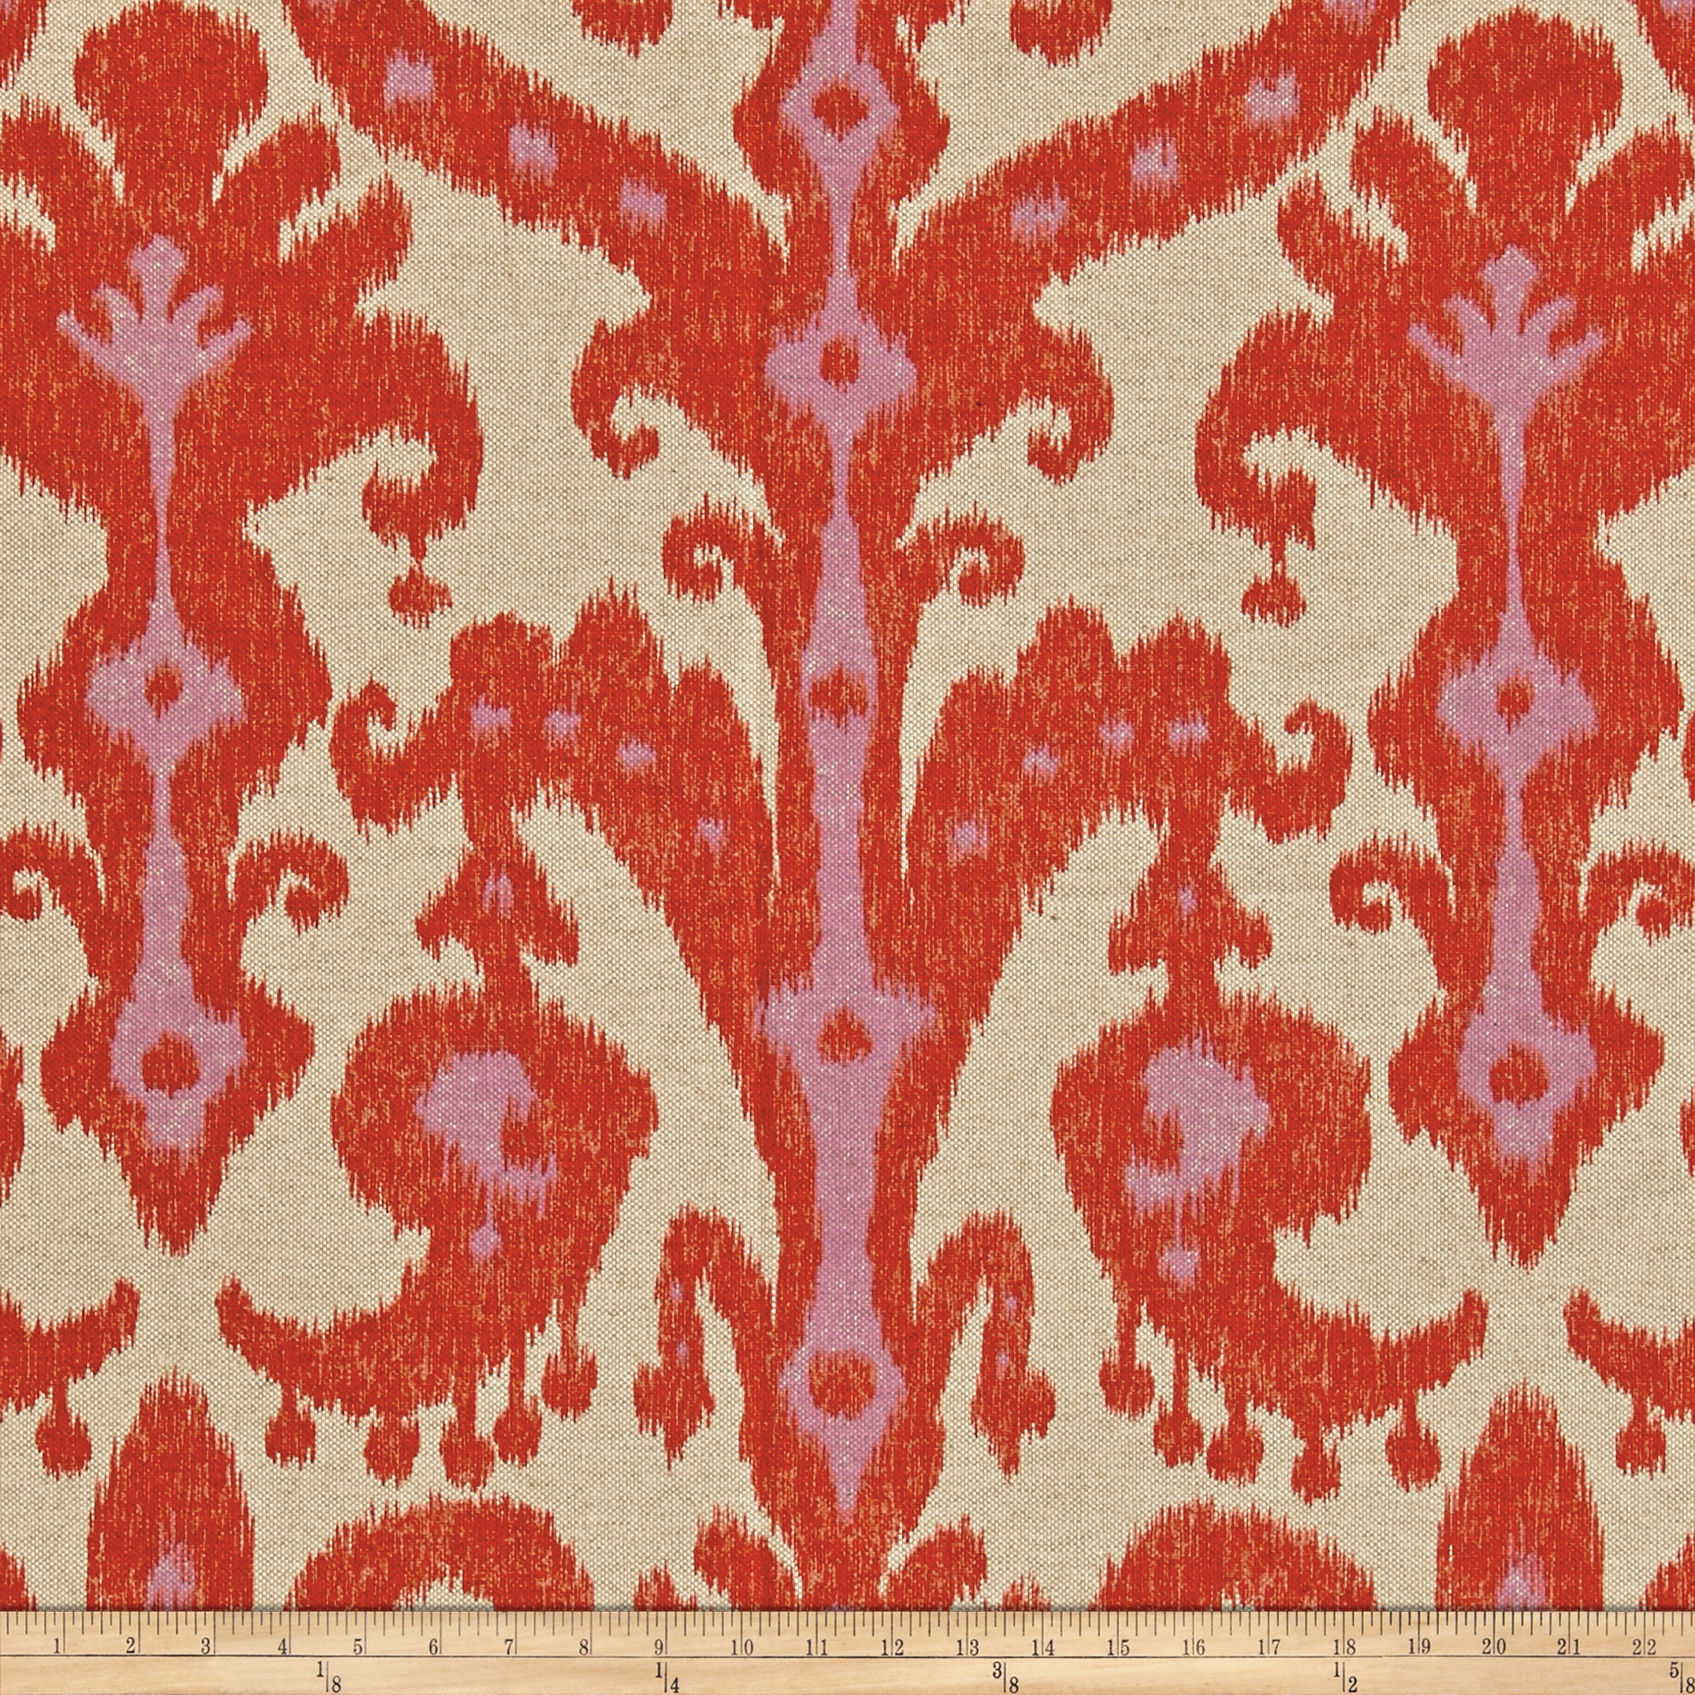 Lacefield Marrakesh Basketweave Firefly Fabric by Lacefield in USA